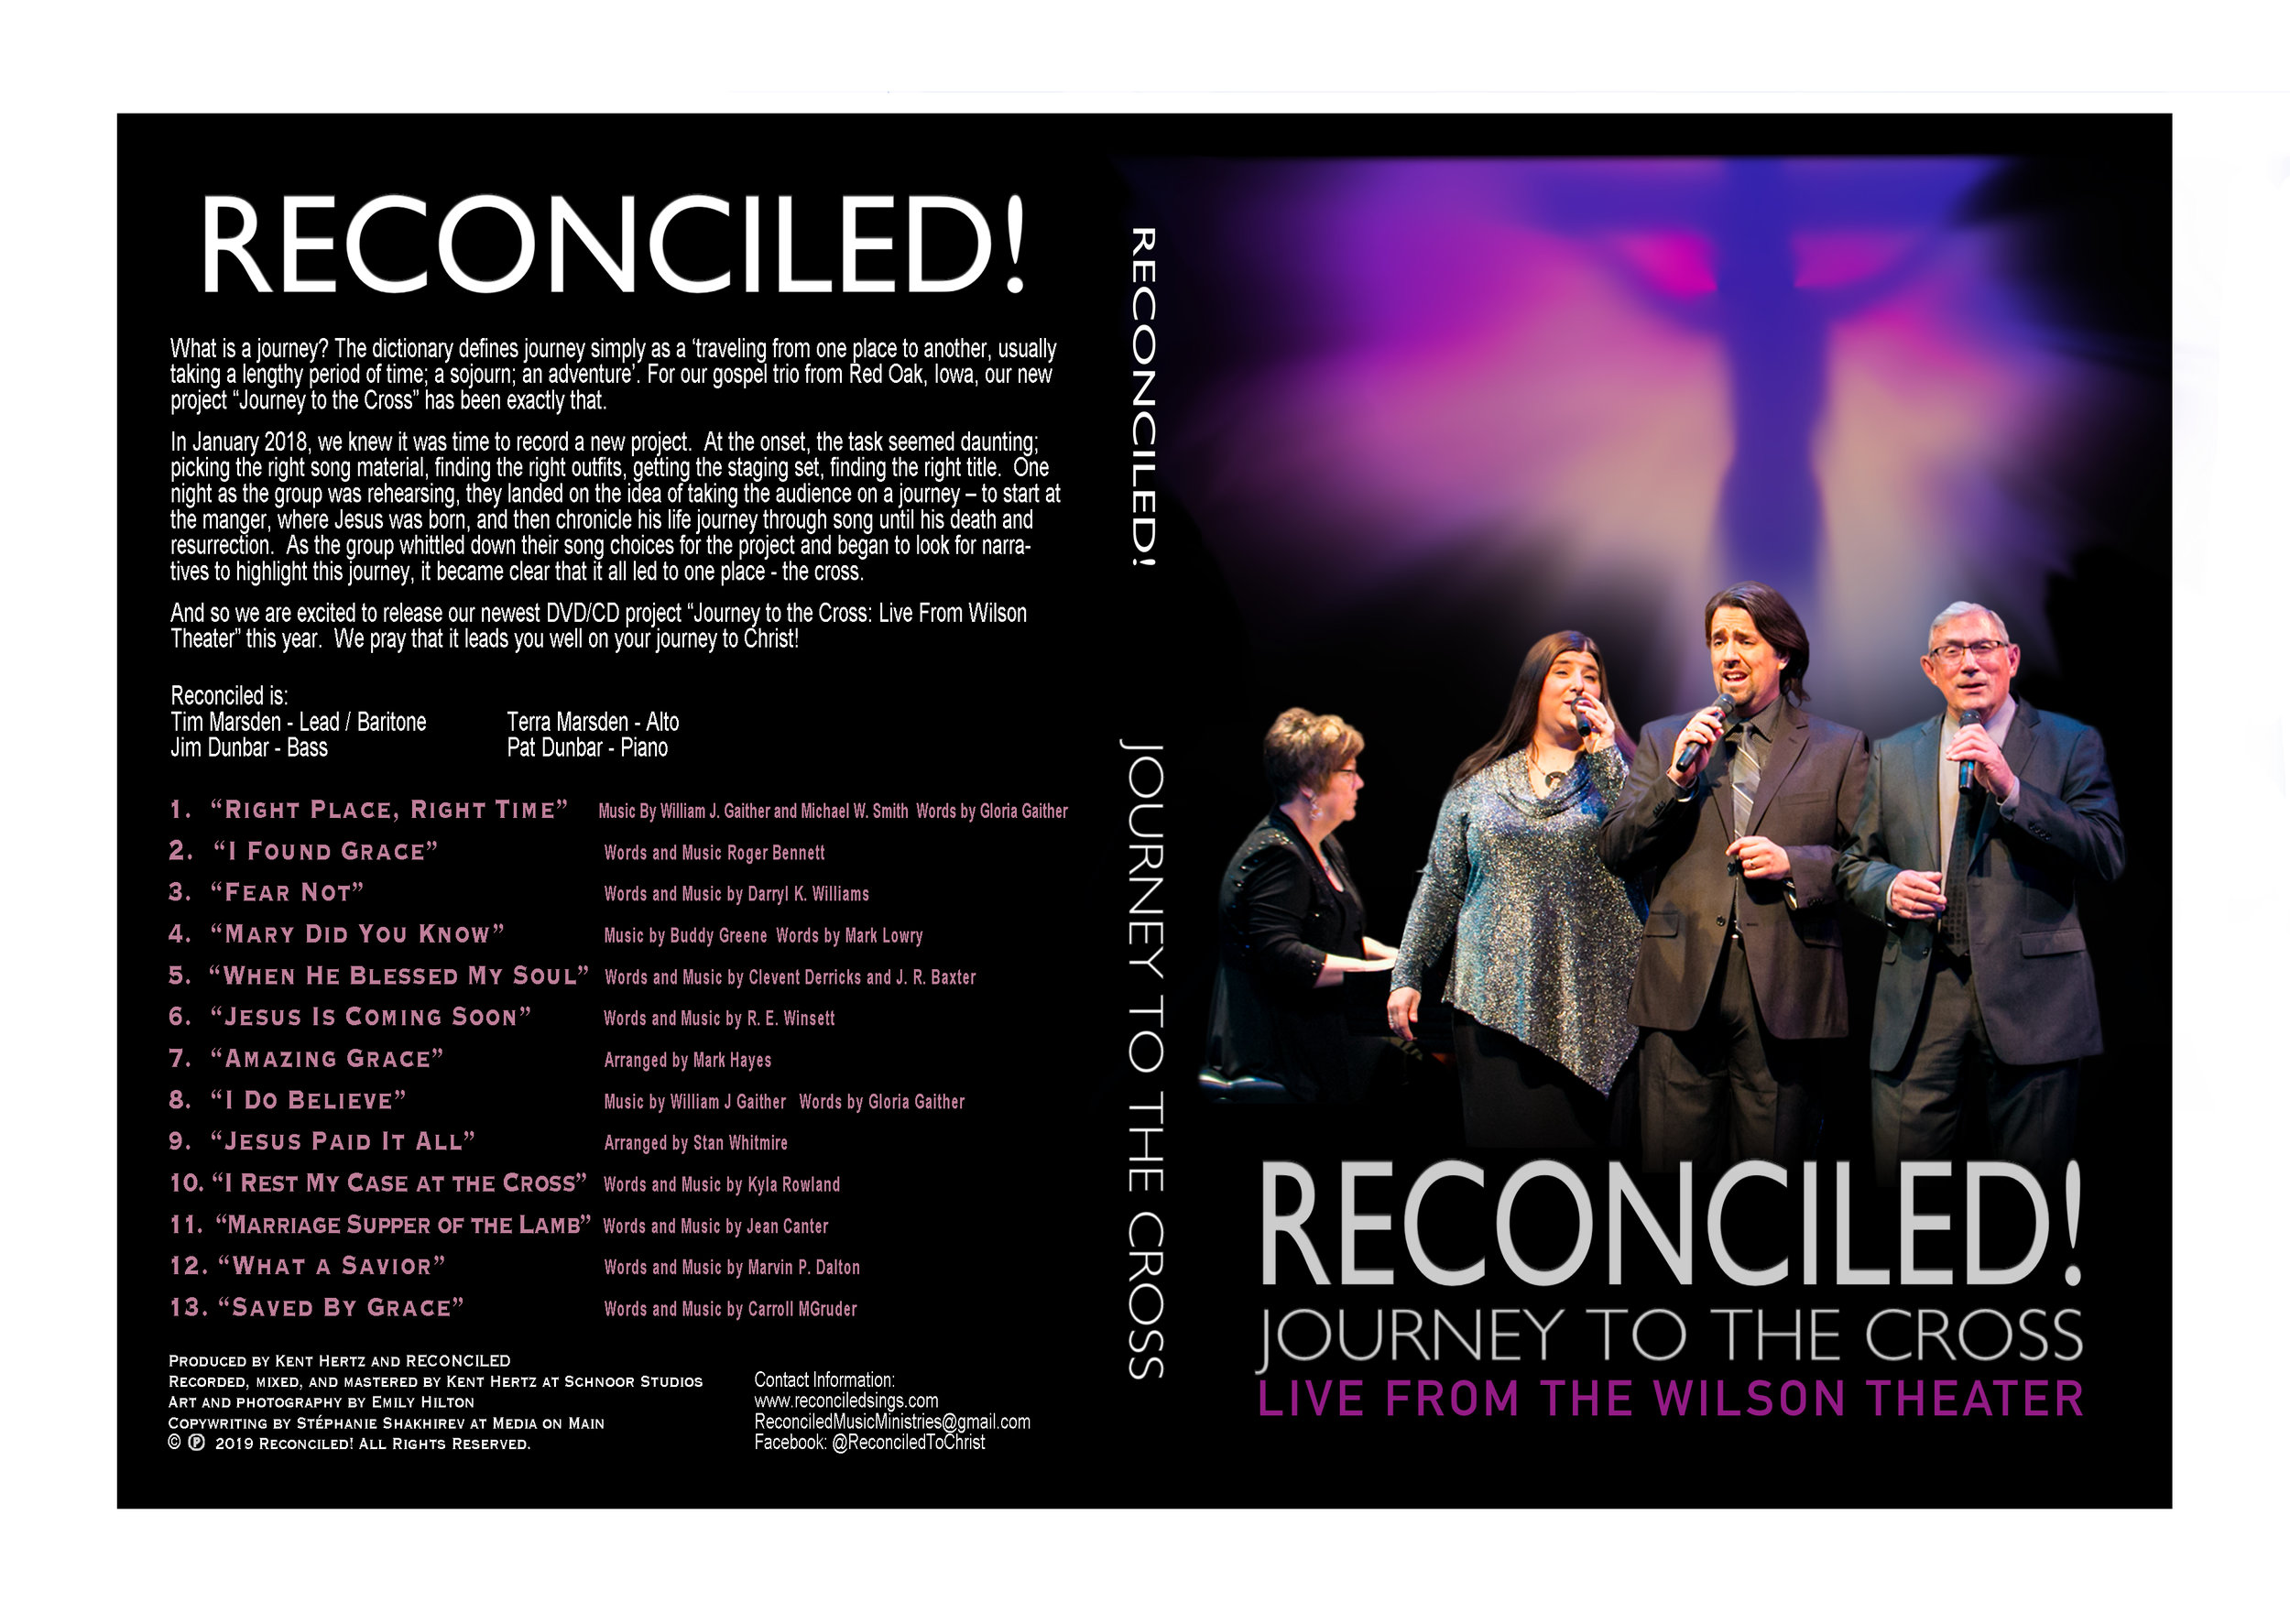 RECONCILED!  - JOURNEY TO THE CORSS - LIVE FROM THE WILSON THEATER DVD